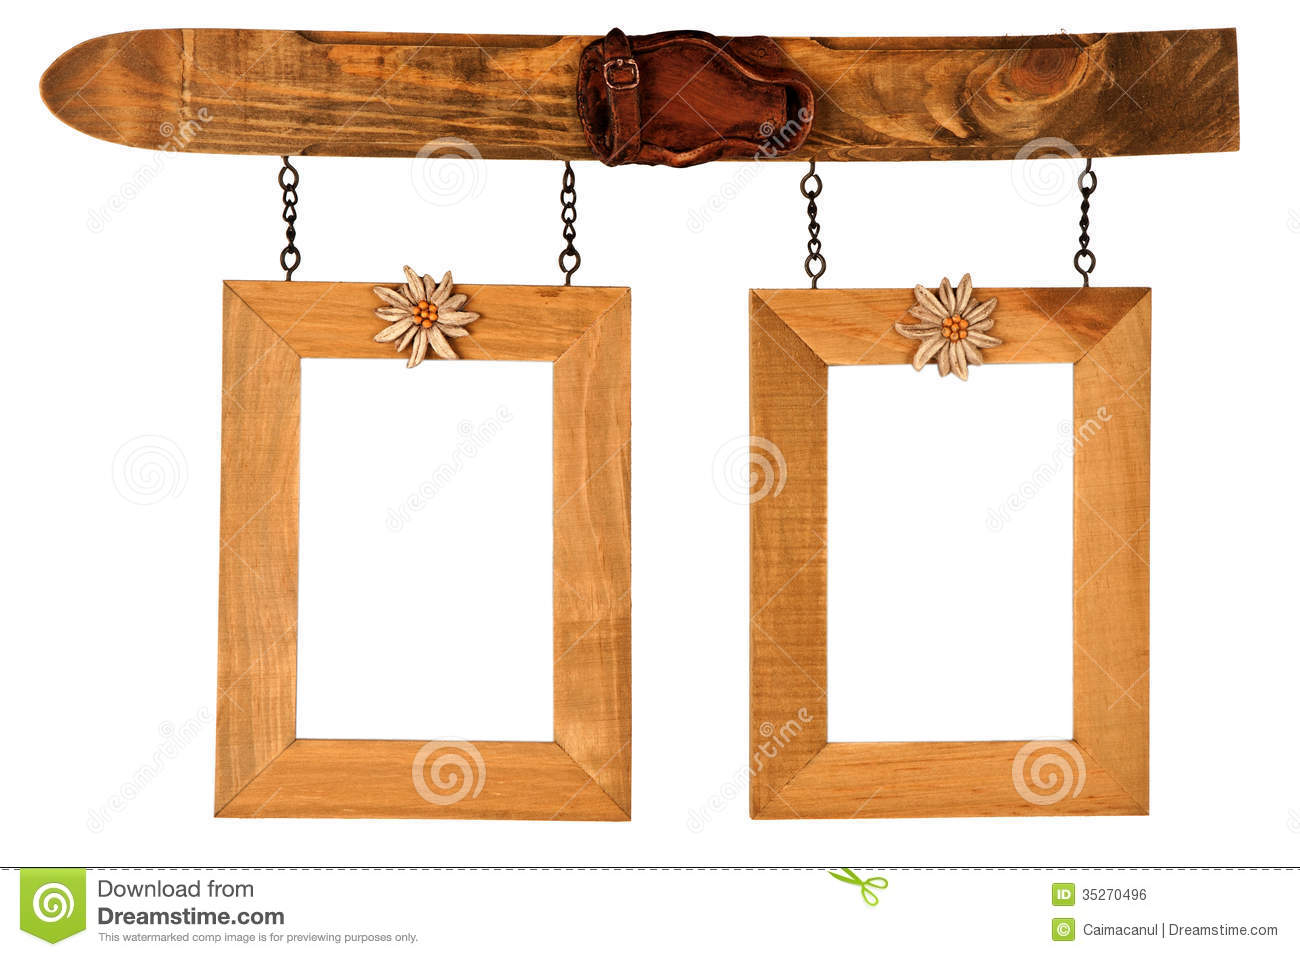 Two Hanged Wooden Photo Frames Stock Photo - Image of craft, flower ...